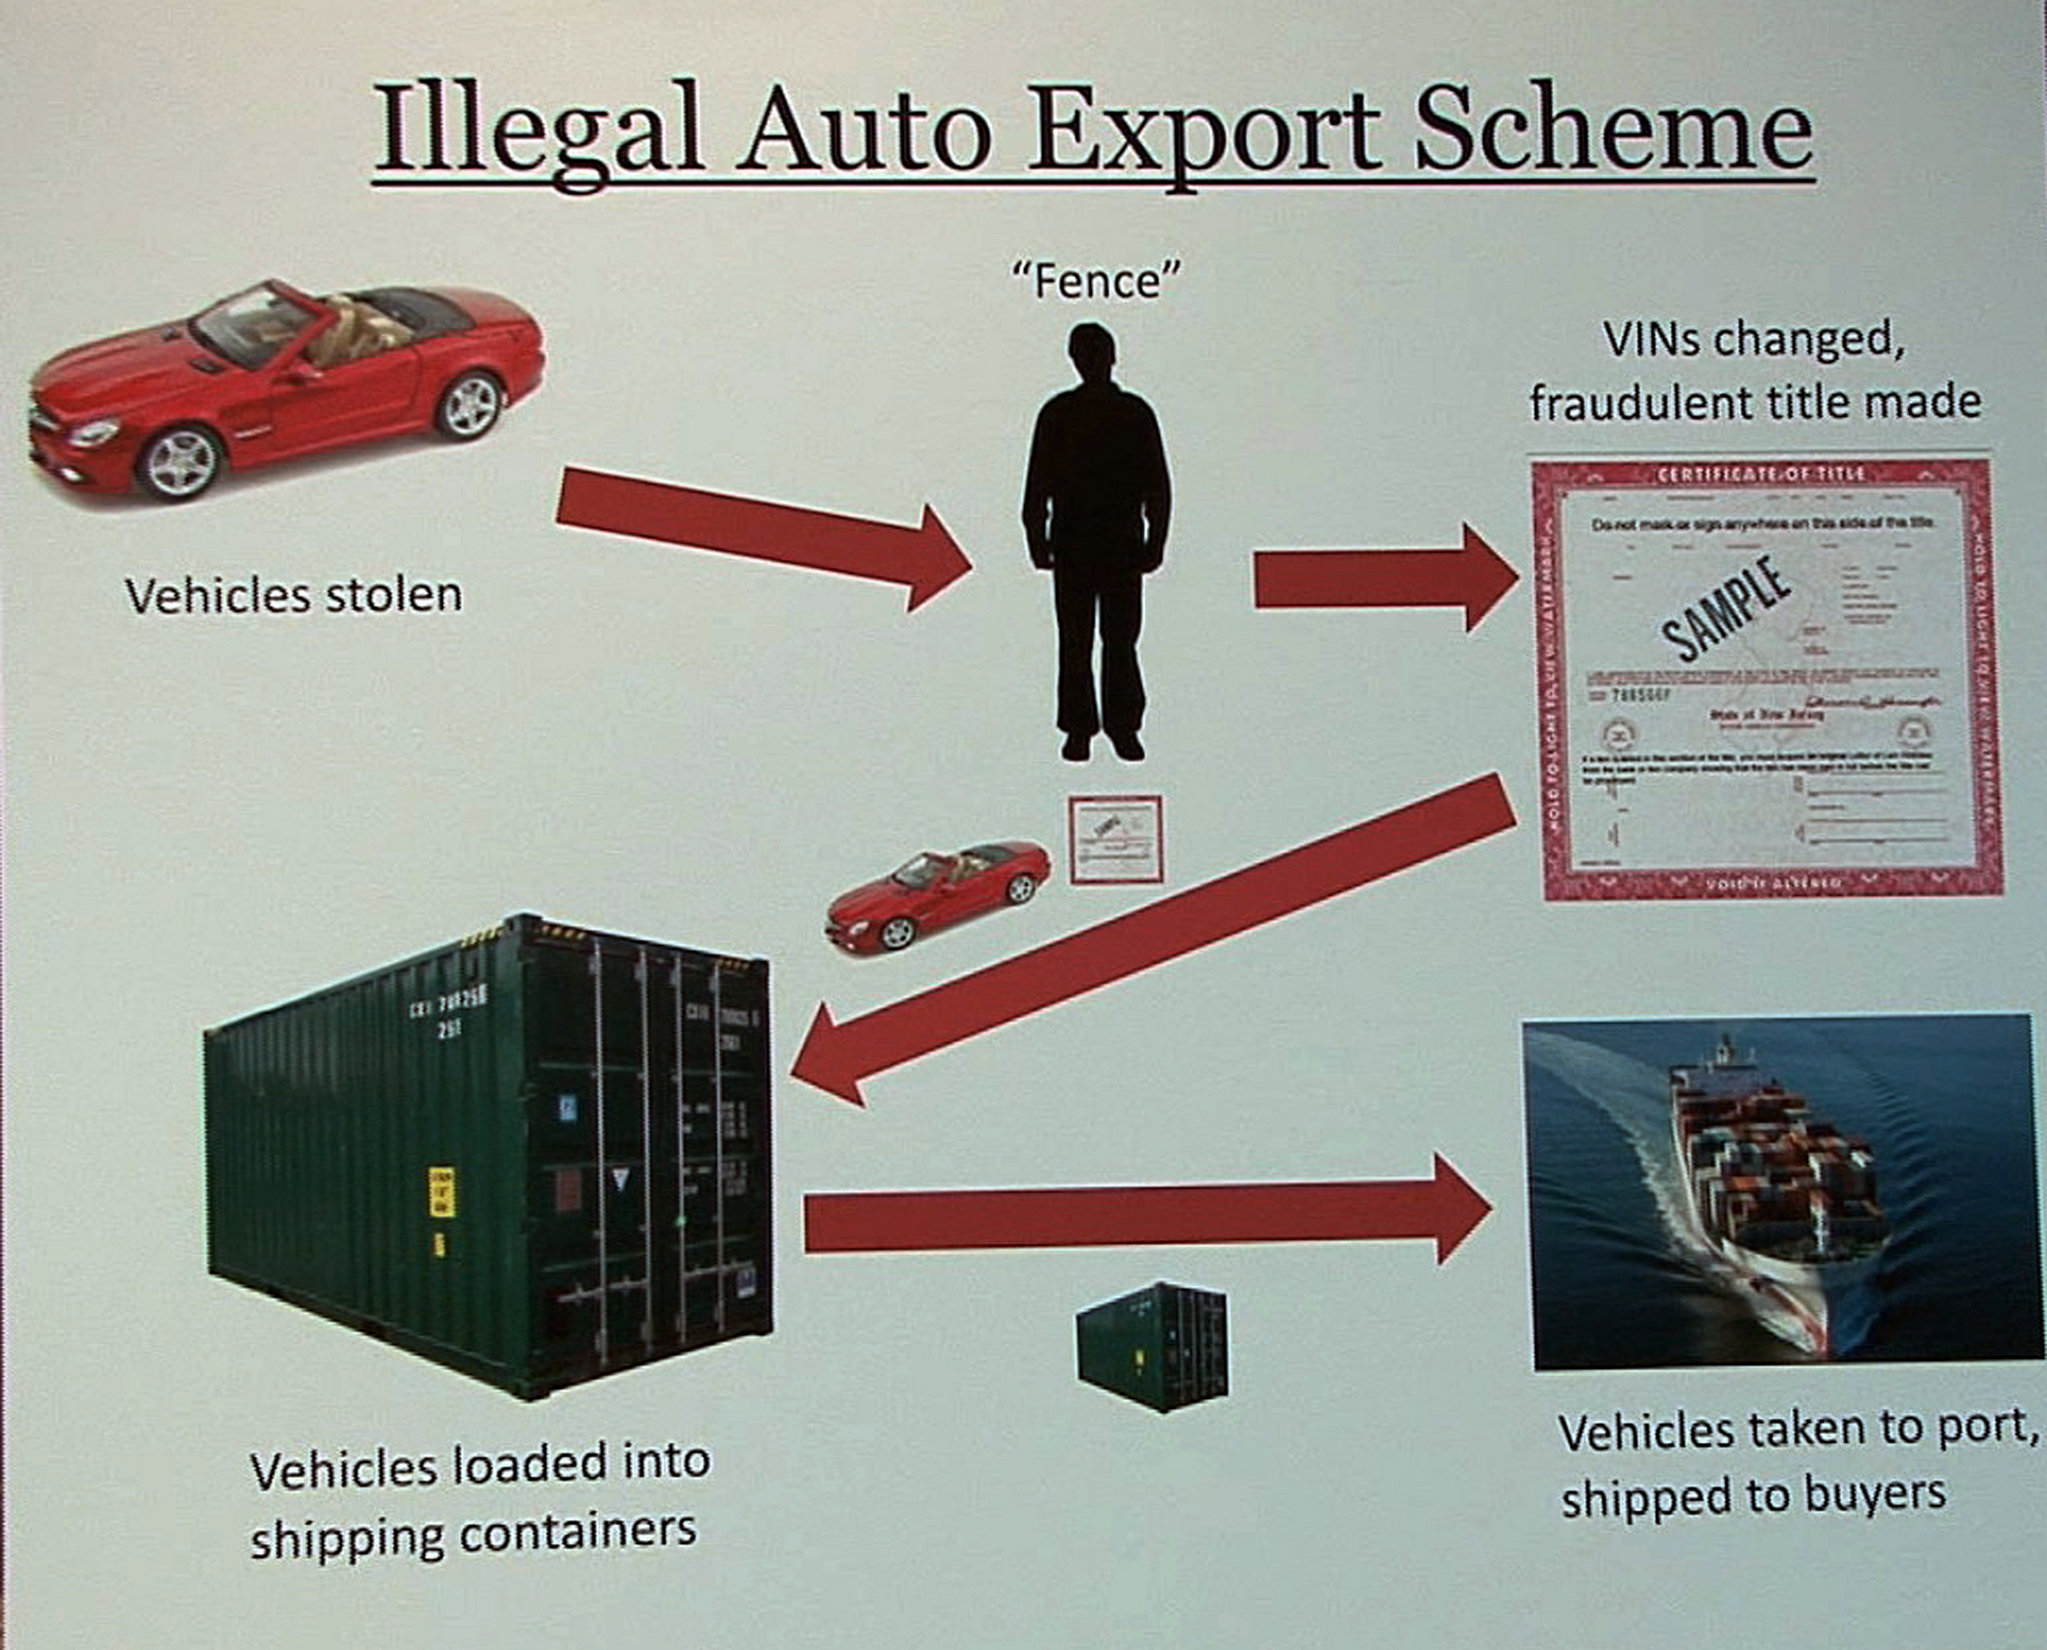 ring that stole cars worth $6 million and shipped them to africa is used car